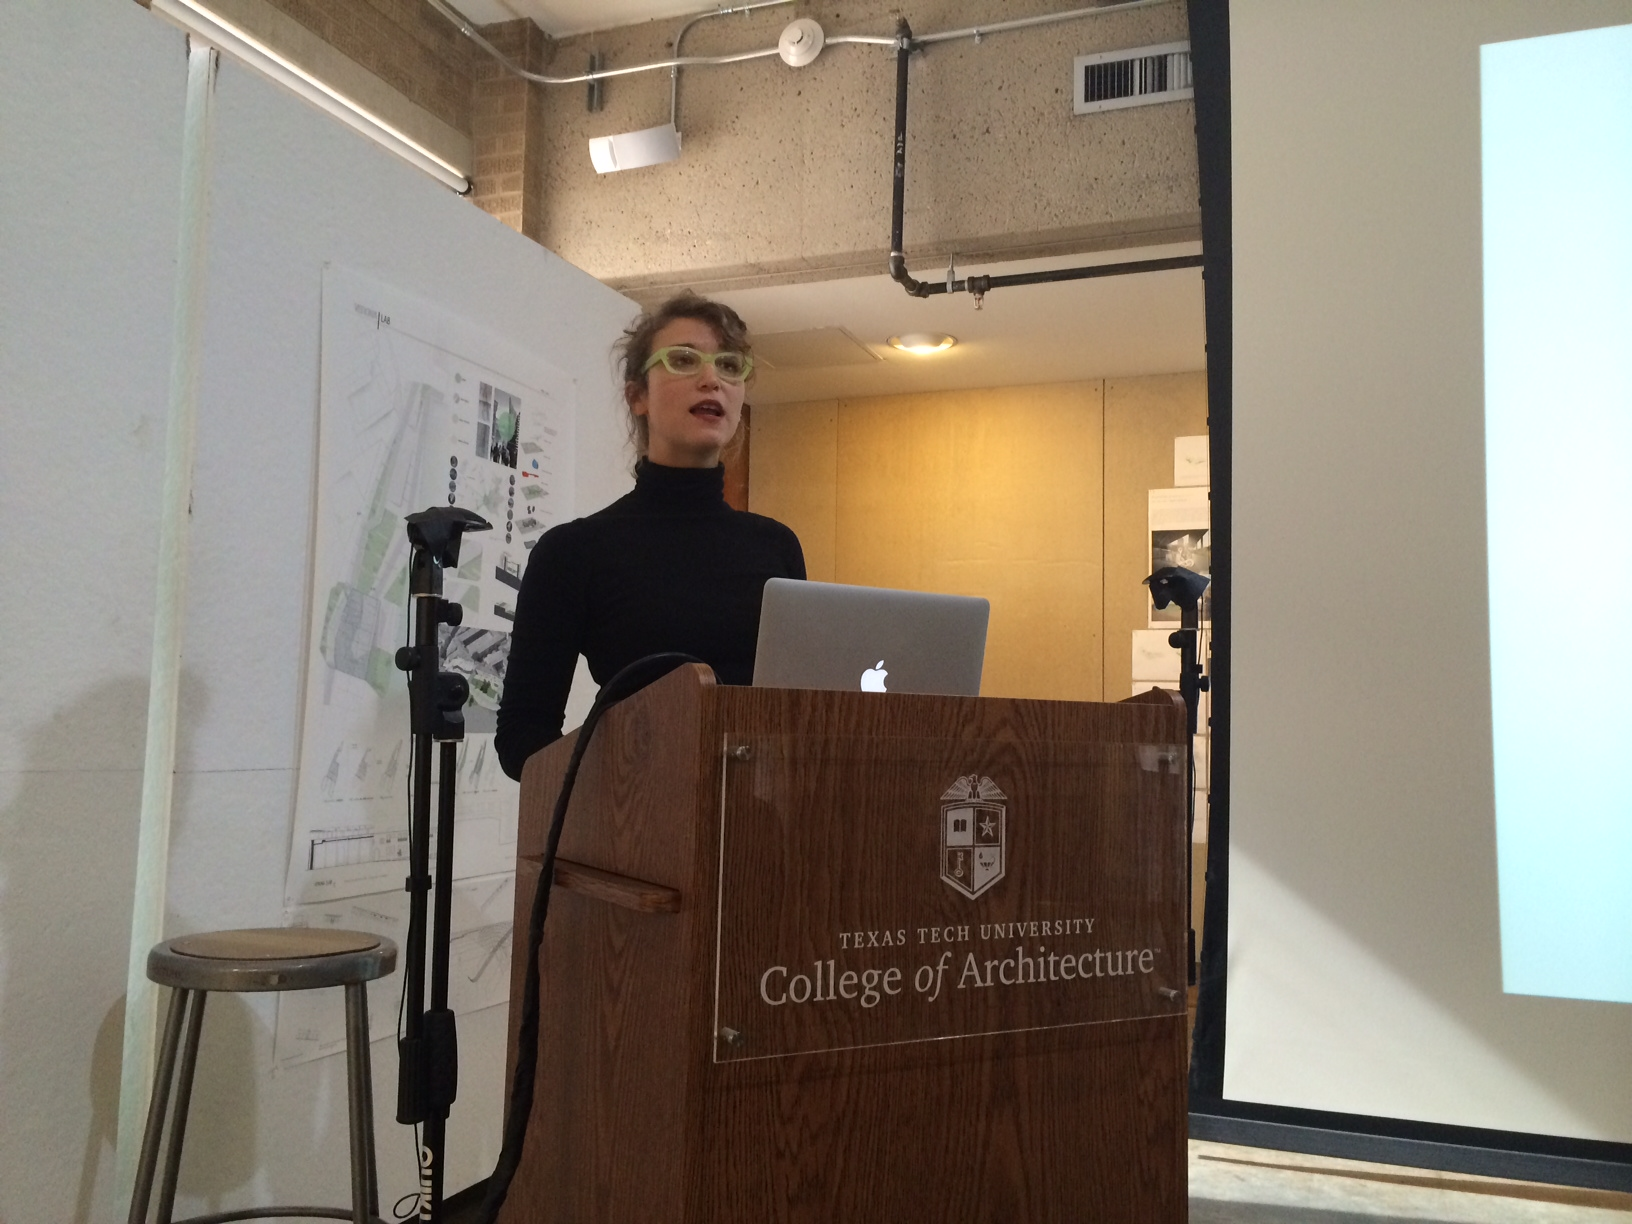 photo of Ingeborg Kühler lecturing about Tubes of the American West, Lubbock, Texas, 15 Nov 2013.